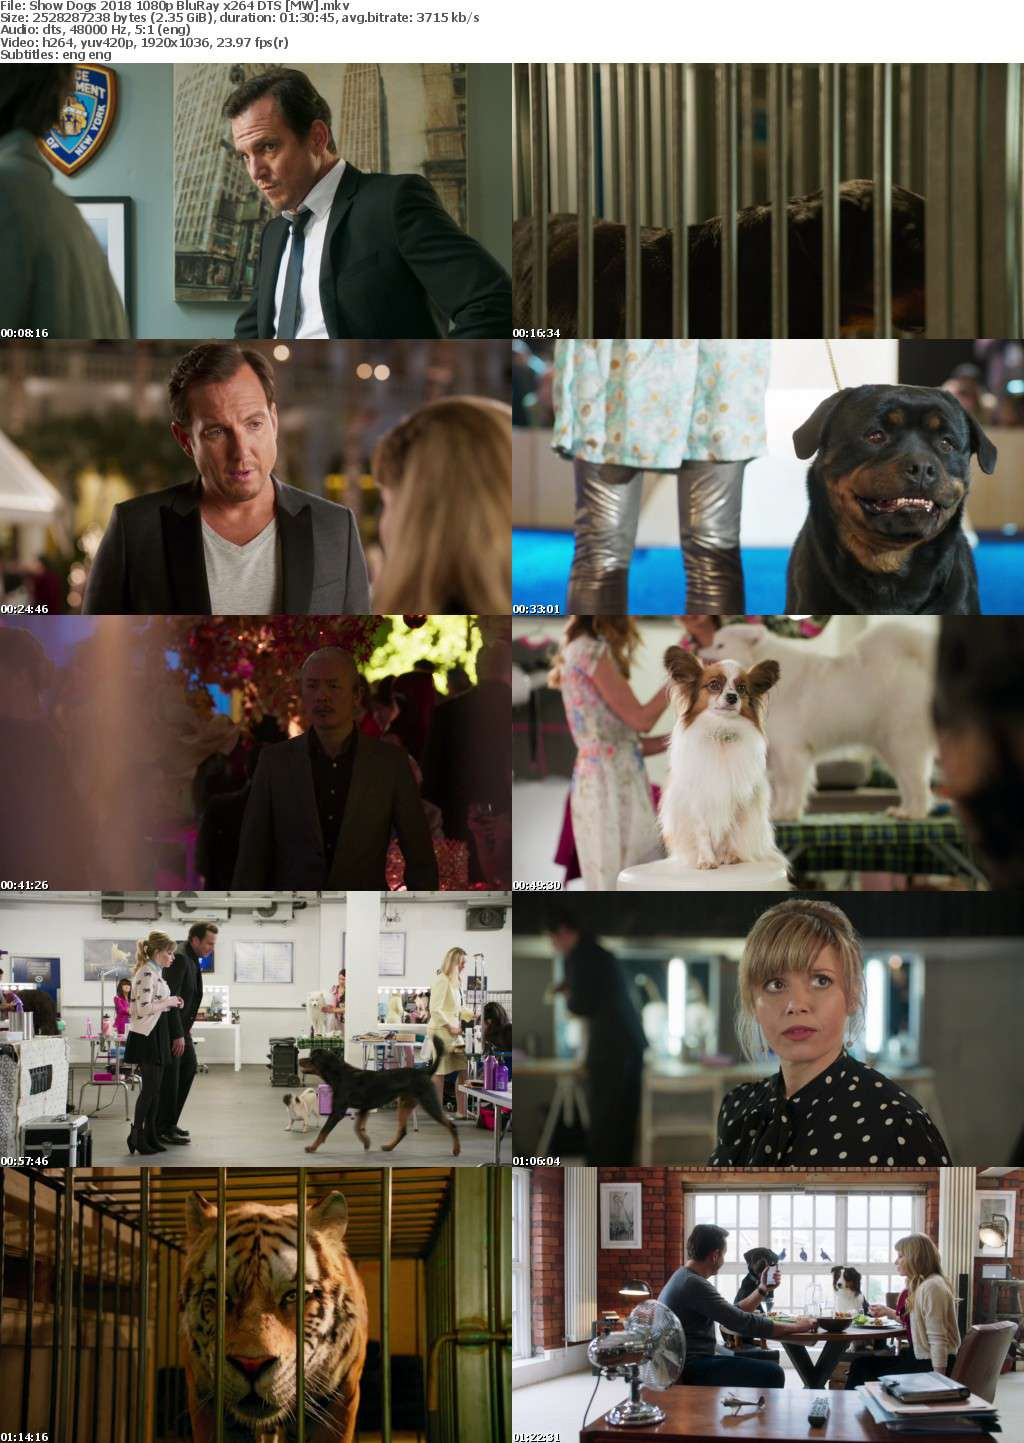 Show Dogs (2018) 1080p BluRay x264 DTS MW